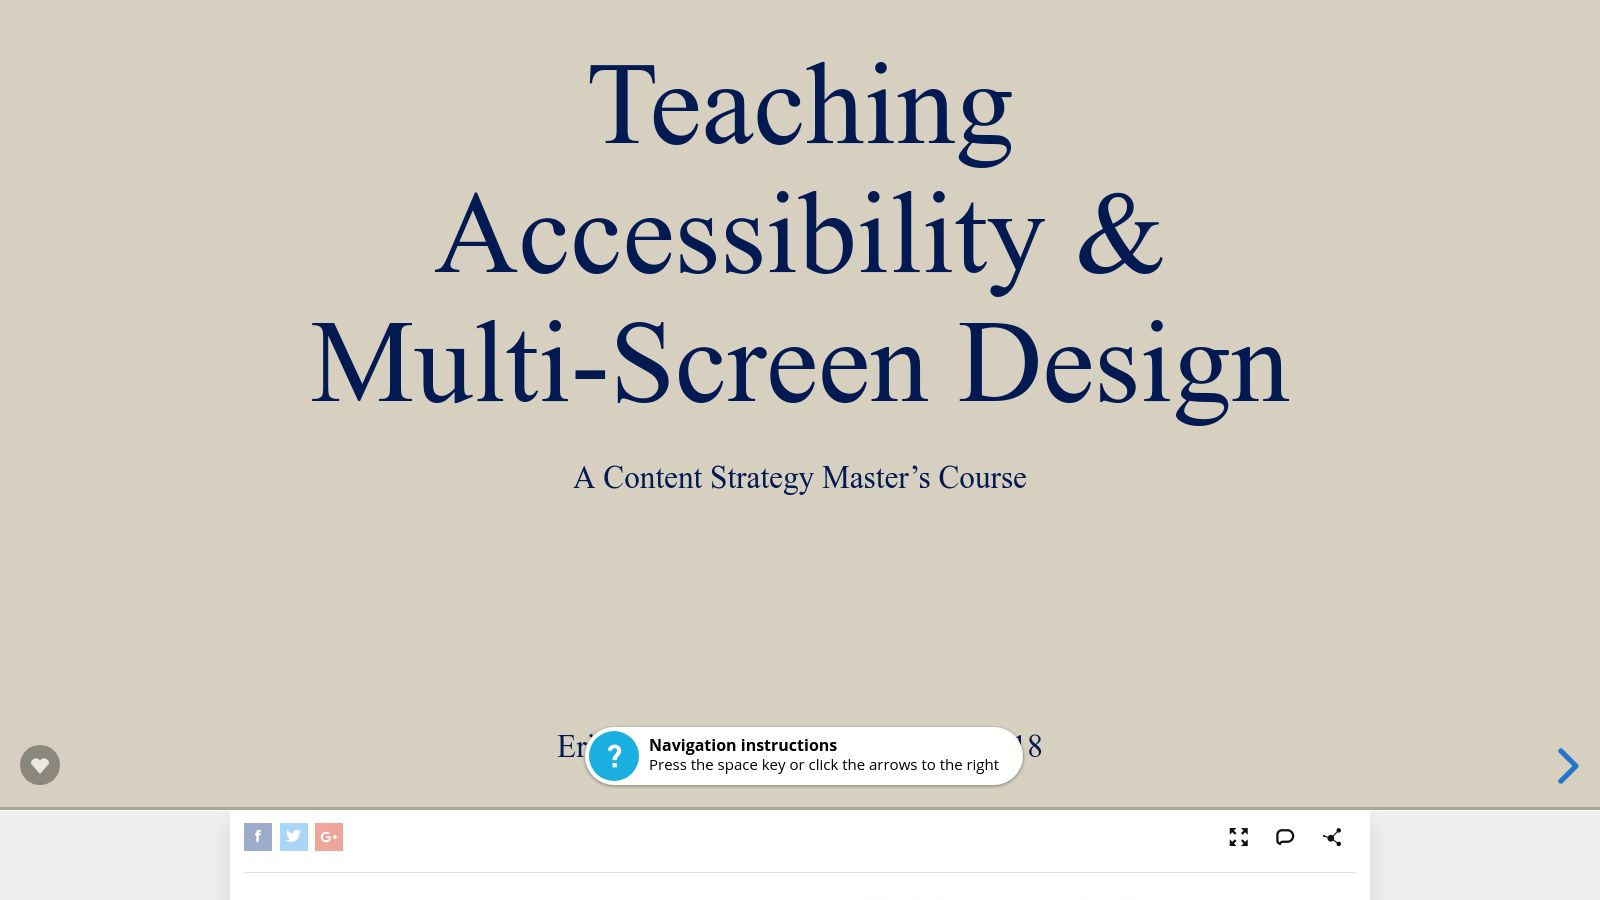 Teaching Accessibility & Multi-Screen Design – A Content Strategy Master's Course